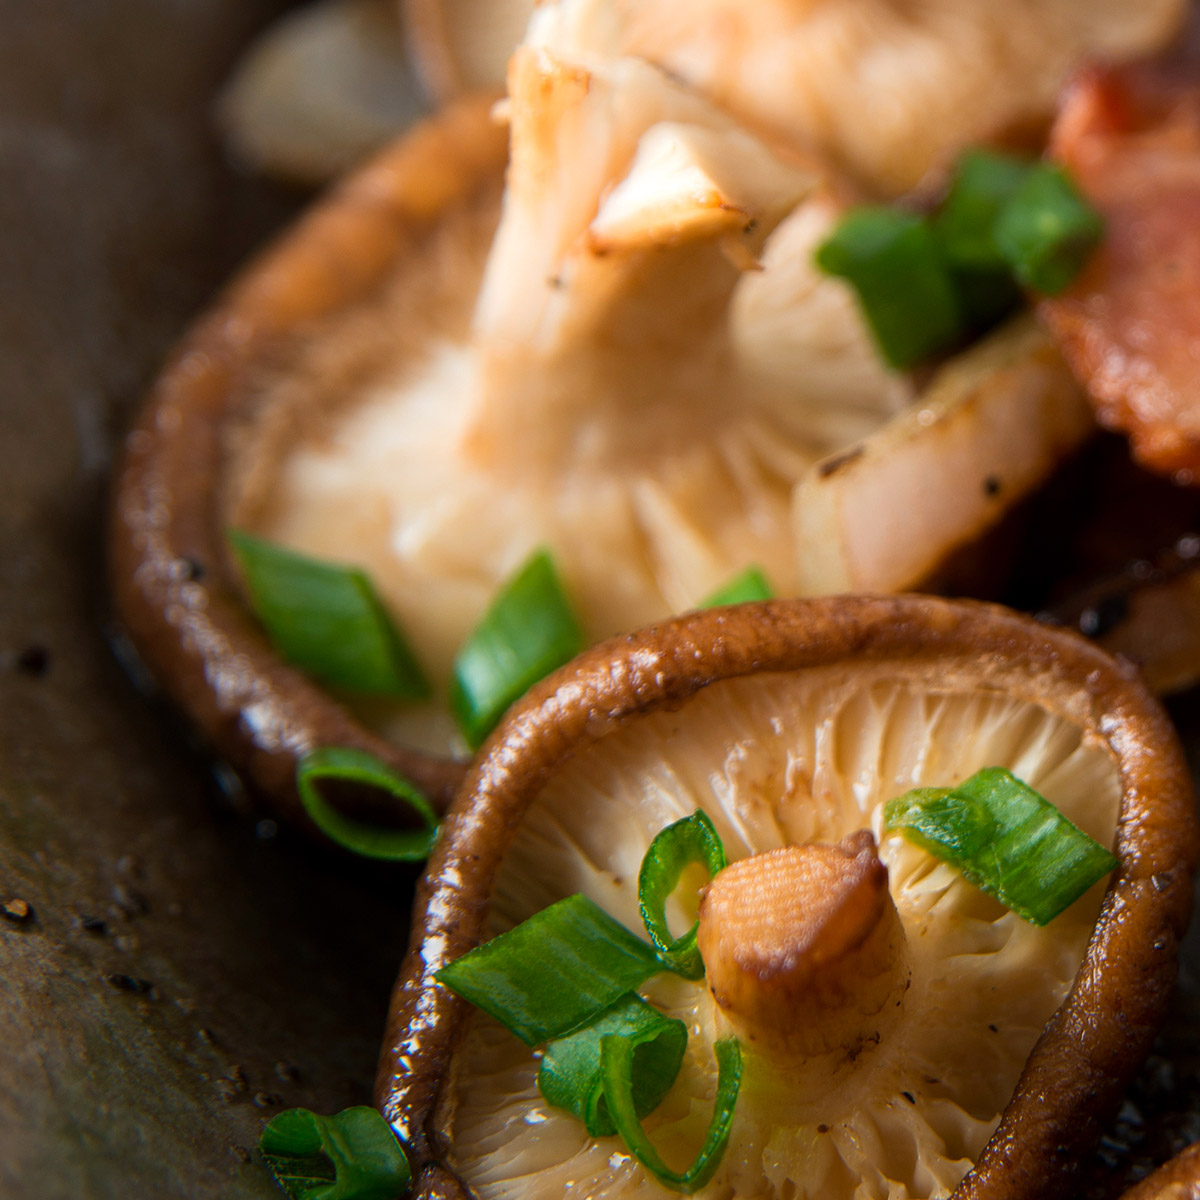 Pinot Noir Food suggestion - Roasted Mushrooms with Herbs